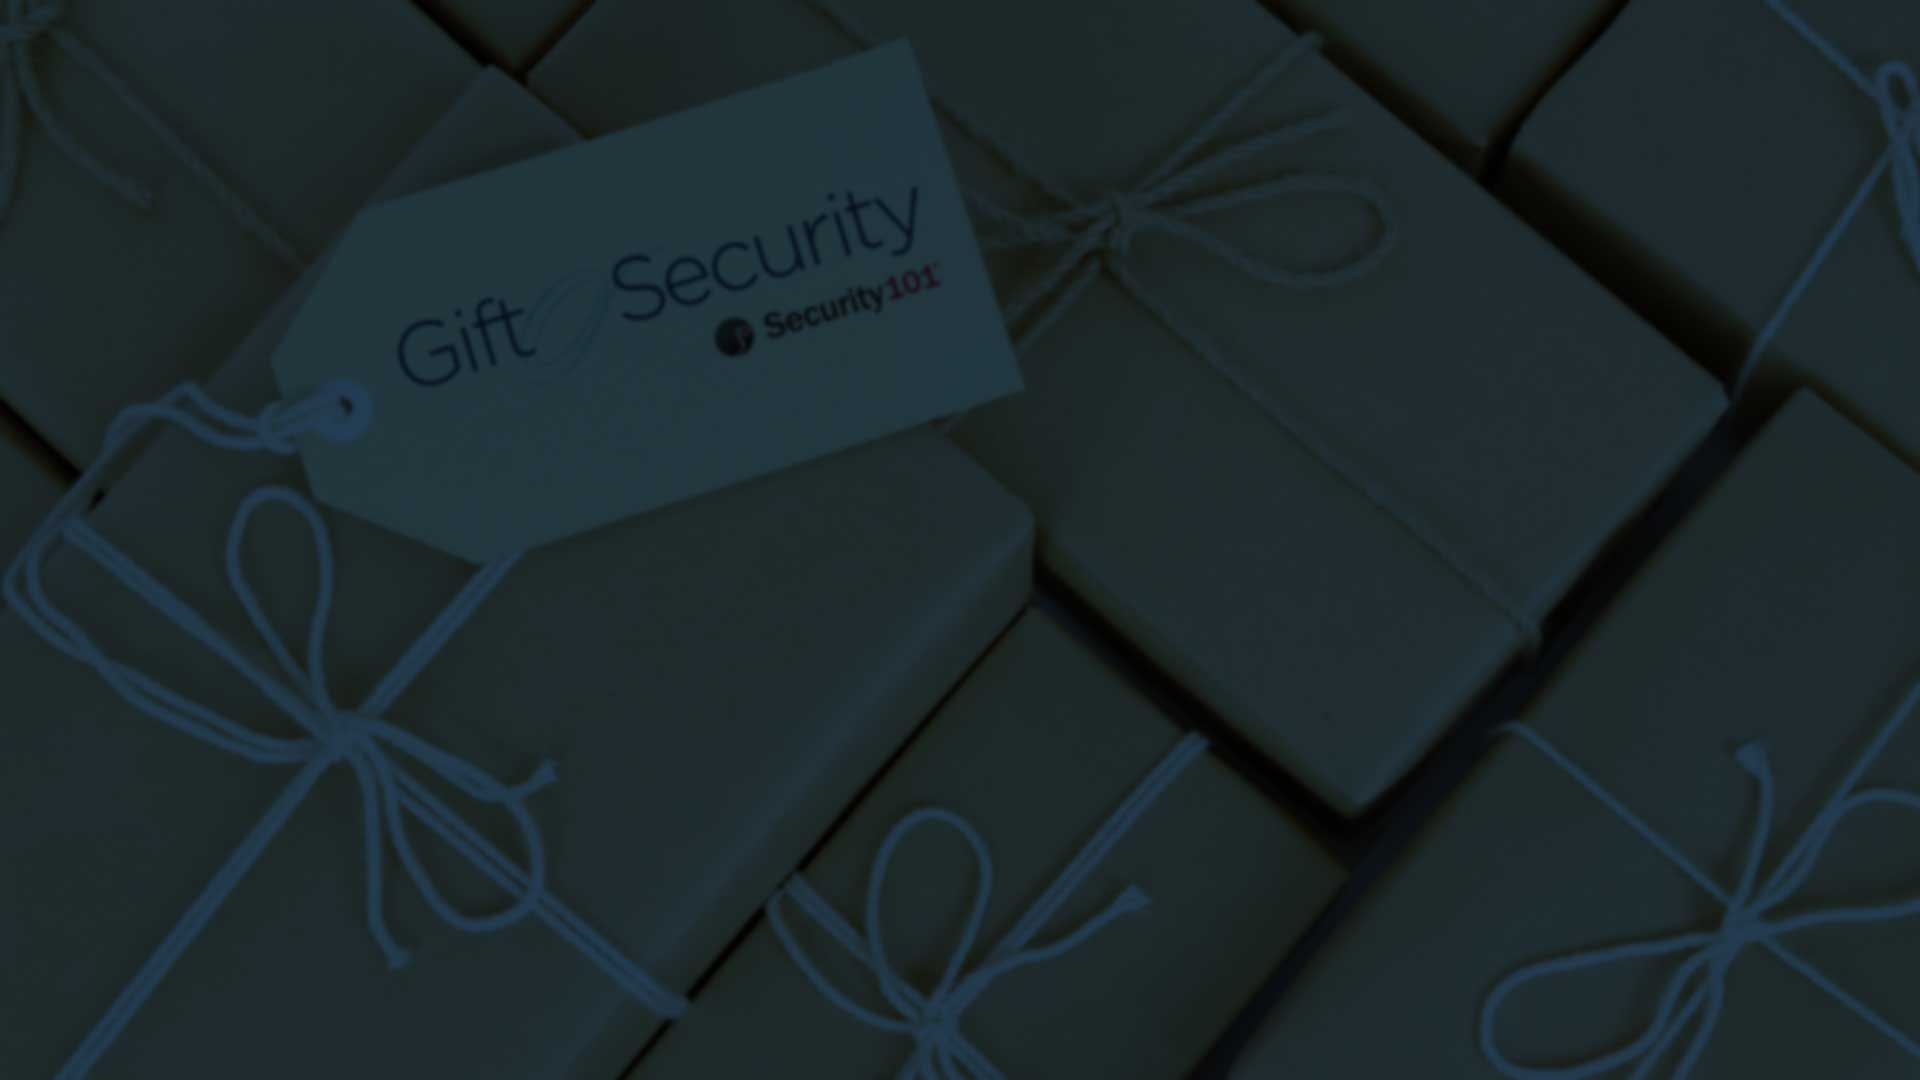 Gift of Security